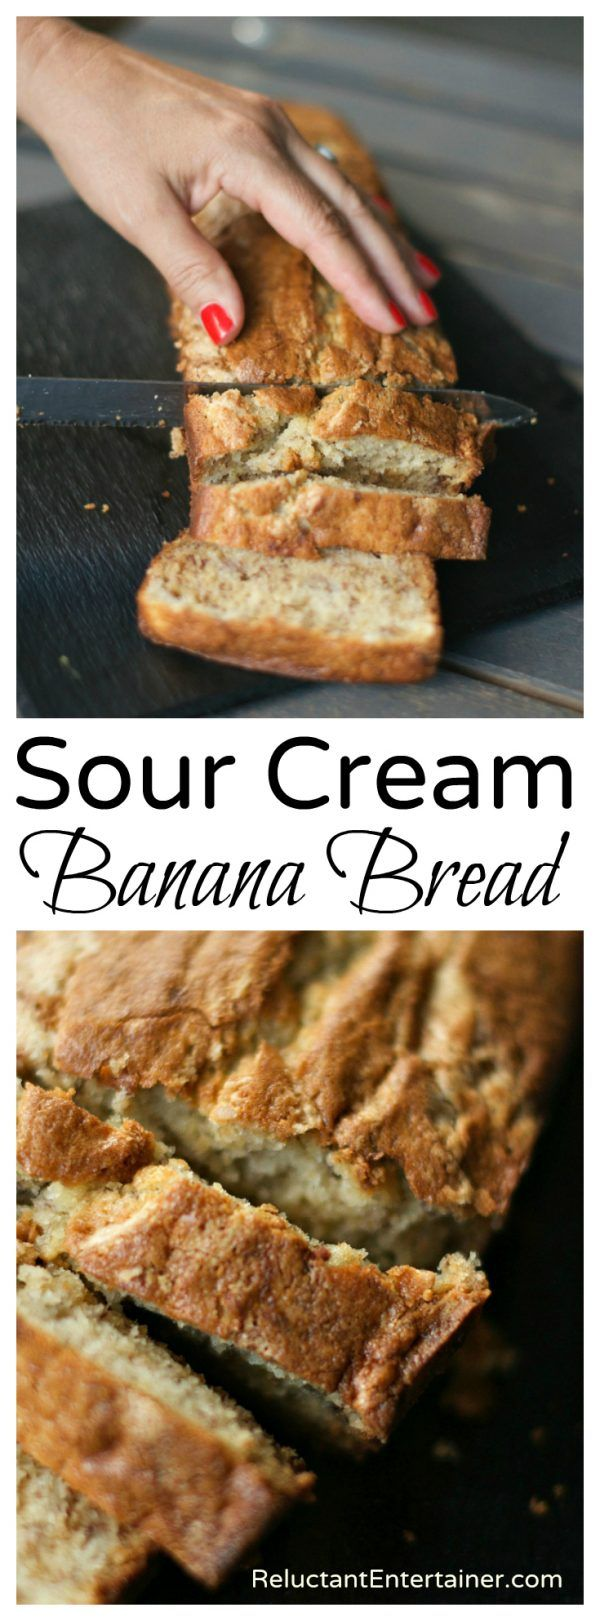 Sour Cream Banana Bread I Just Made This And Added Peanut Butter Chips And It Is So Amazing K Sour Cream Banana Bread Best Banana Bread Banana Nut Bread